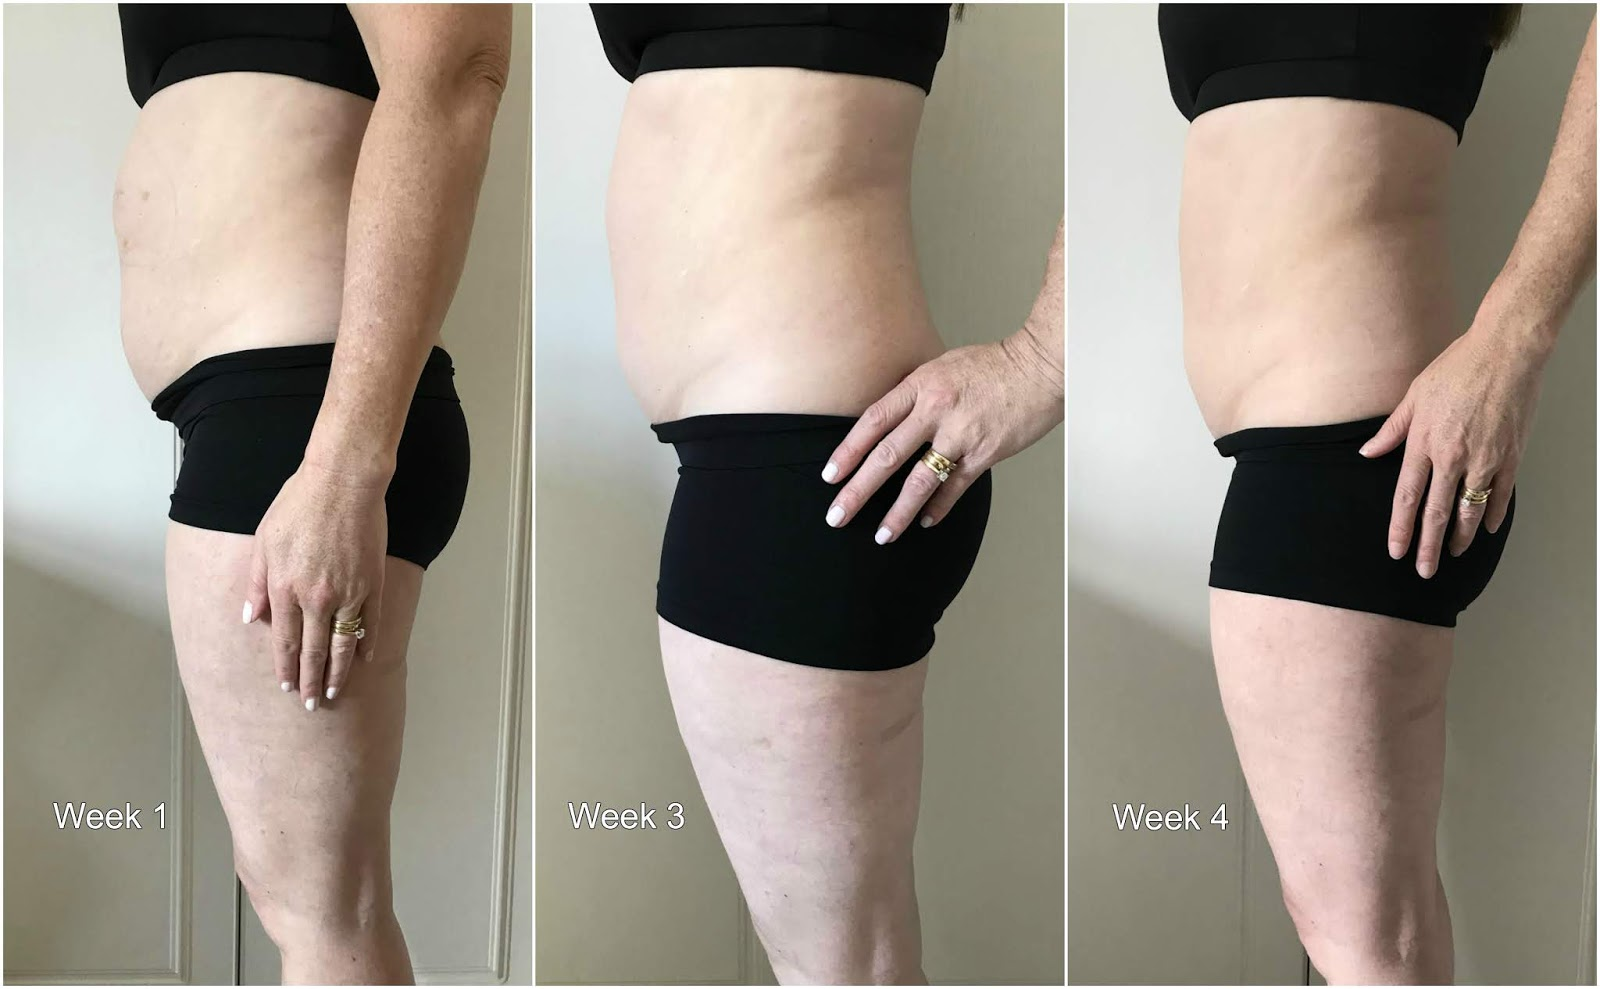 Coolsculpting \ Hampton Clinic \ Solihill \ West Midlands \ fat freezing \ cryolipolysis \ before and after photos \  Priceless Life of Mine \ over 40 lifestyle blog